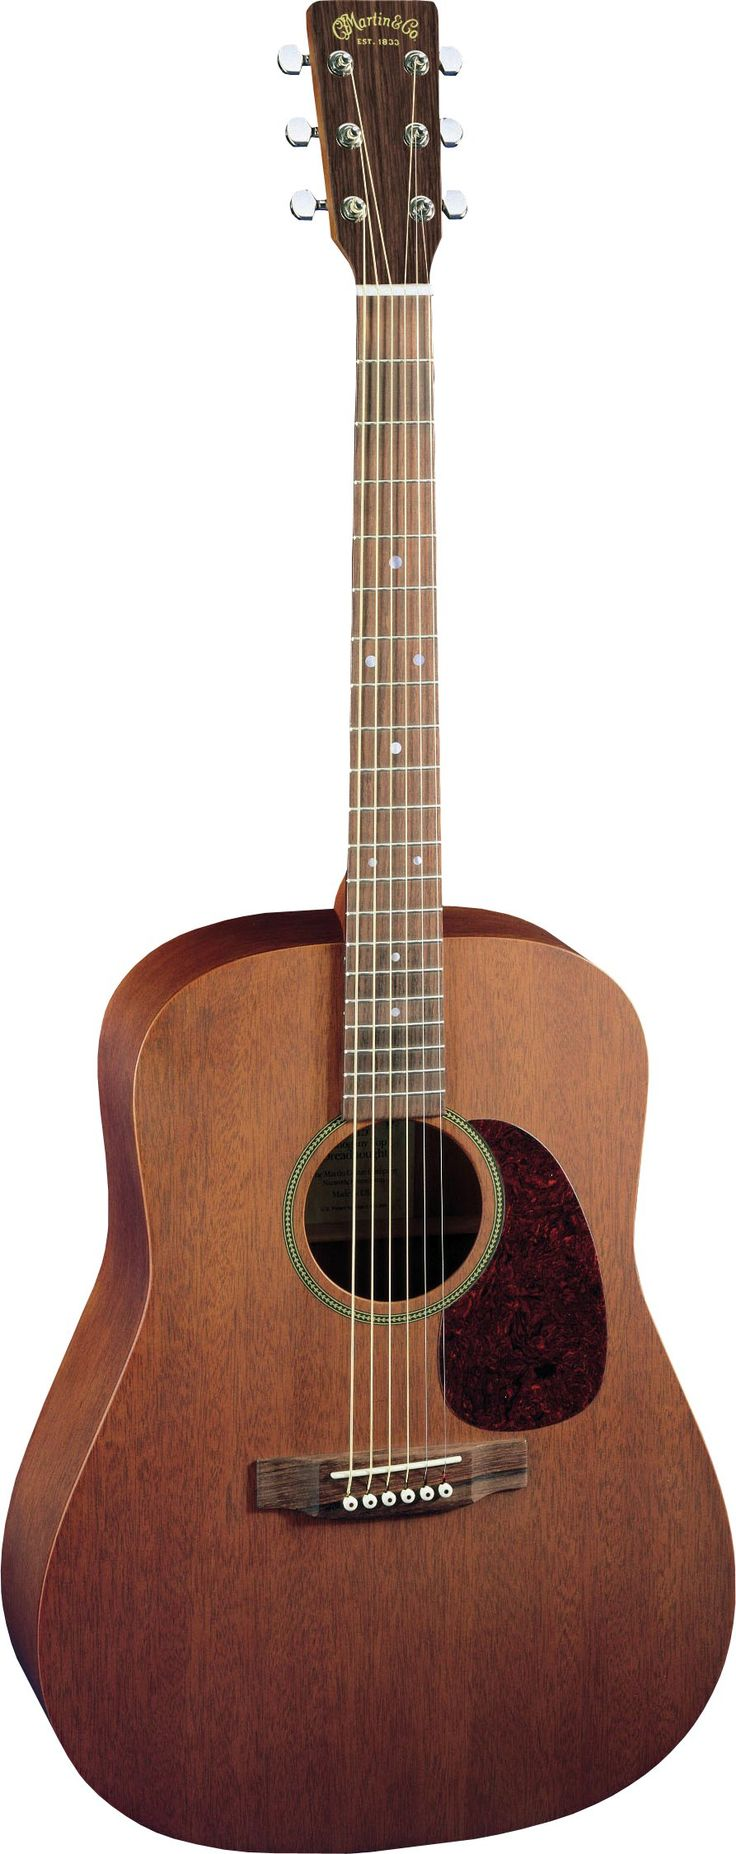 Martin D-15  http://bestacousticguitarsreviews.com/reviews/martin-d-15-review/